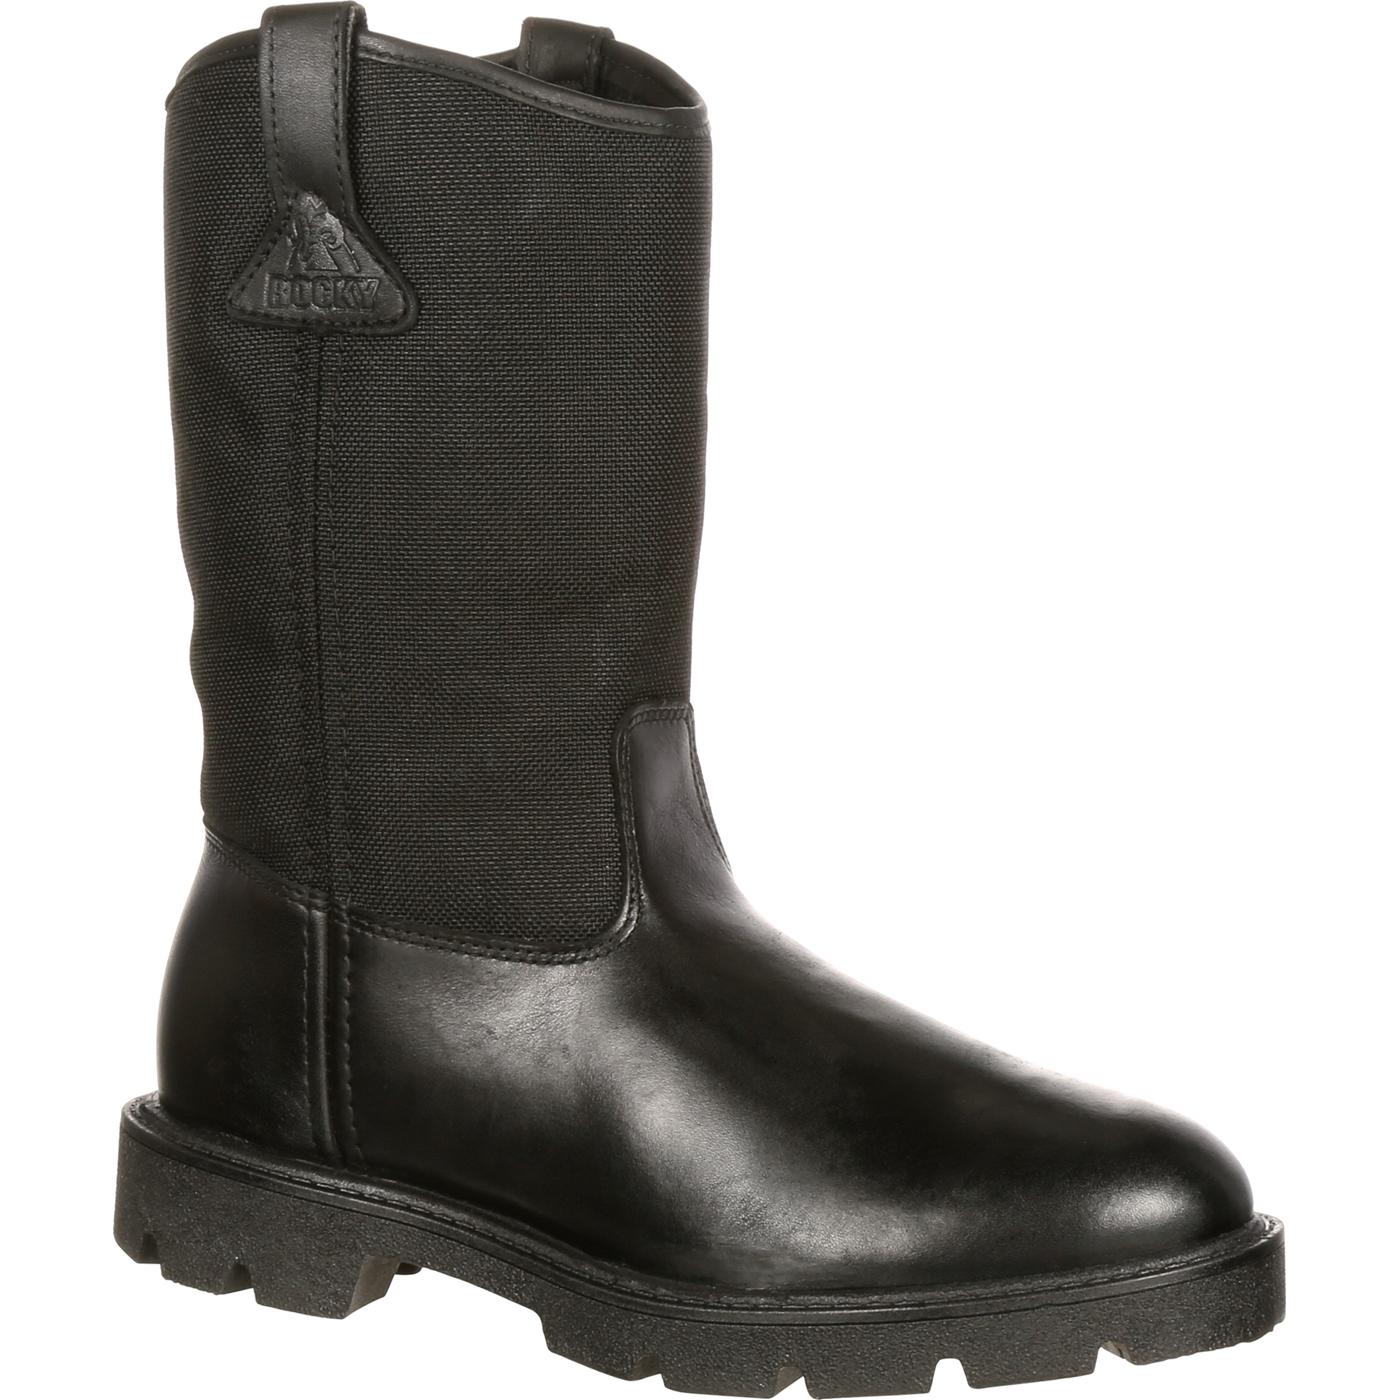 wellingtons boots rocky warden pull-on wellington duty boot, , large RTWBLBR